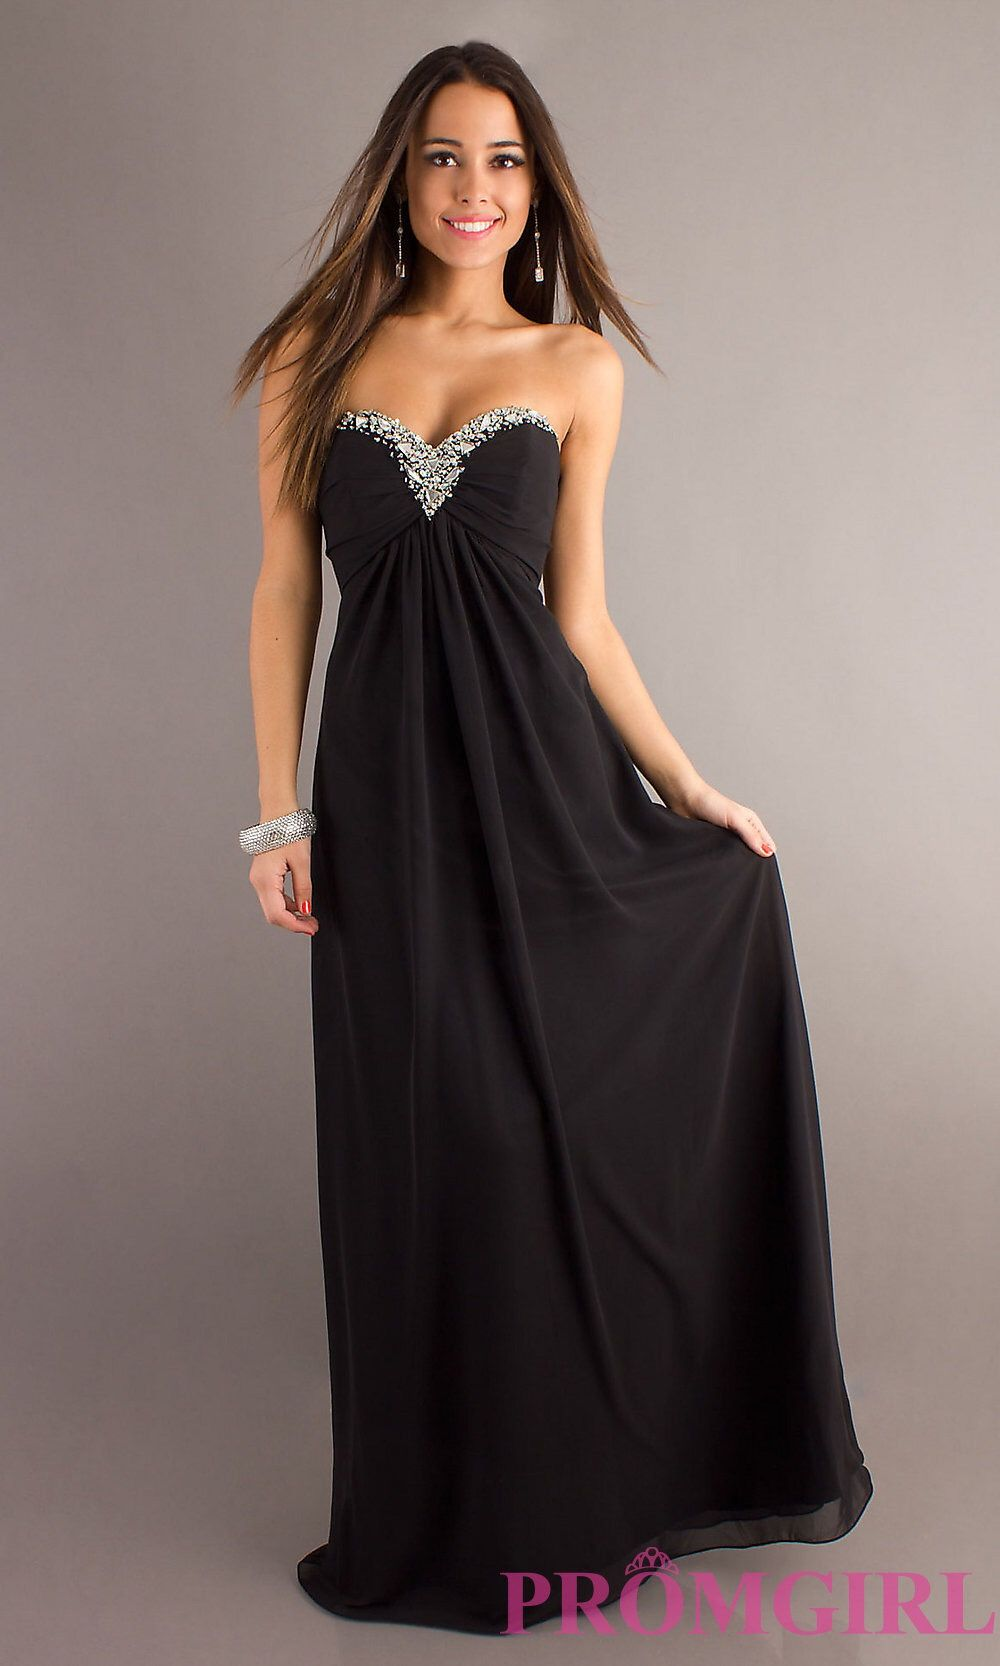 Pin by kristen hill on homecomingprom pinterest homecoming and prom